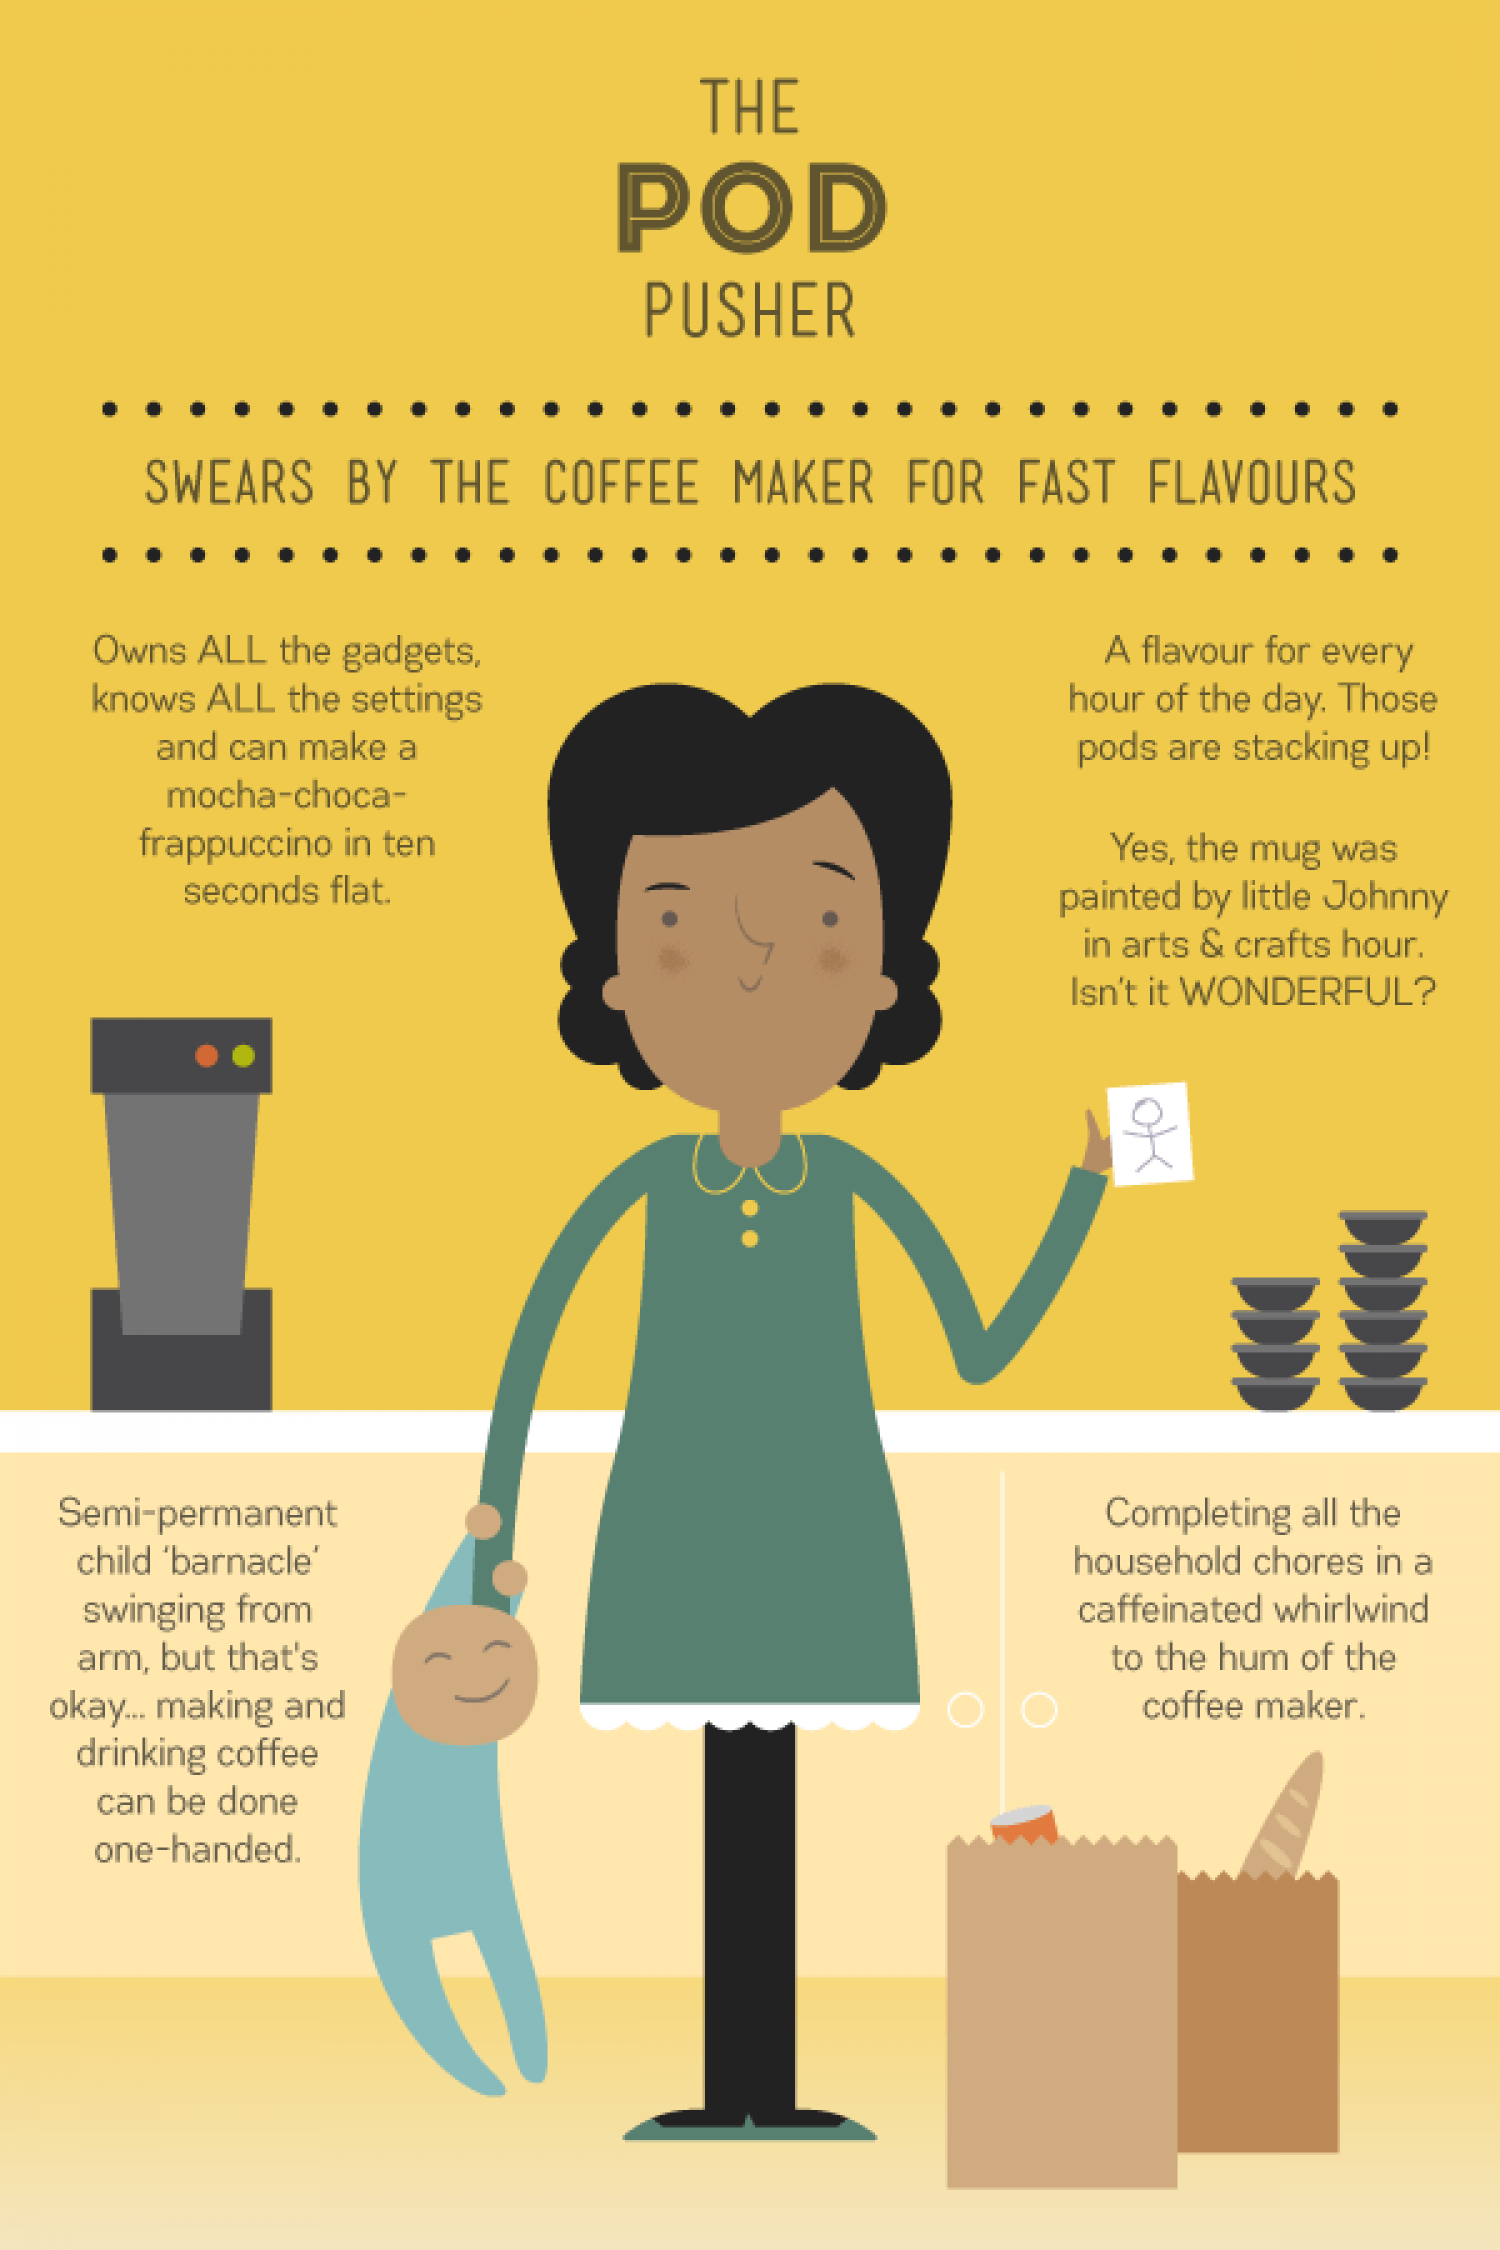 How Do You Brew?: The Pod Pusher Infographic